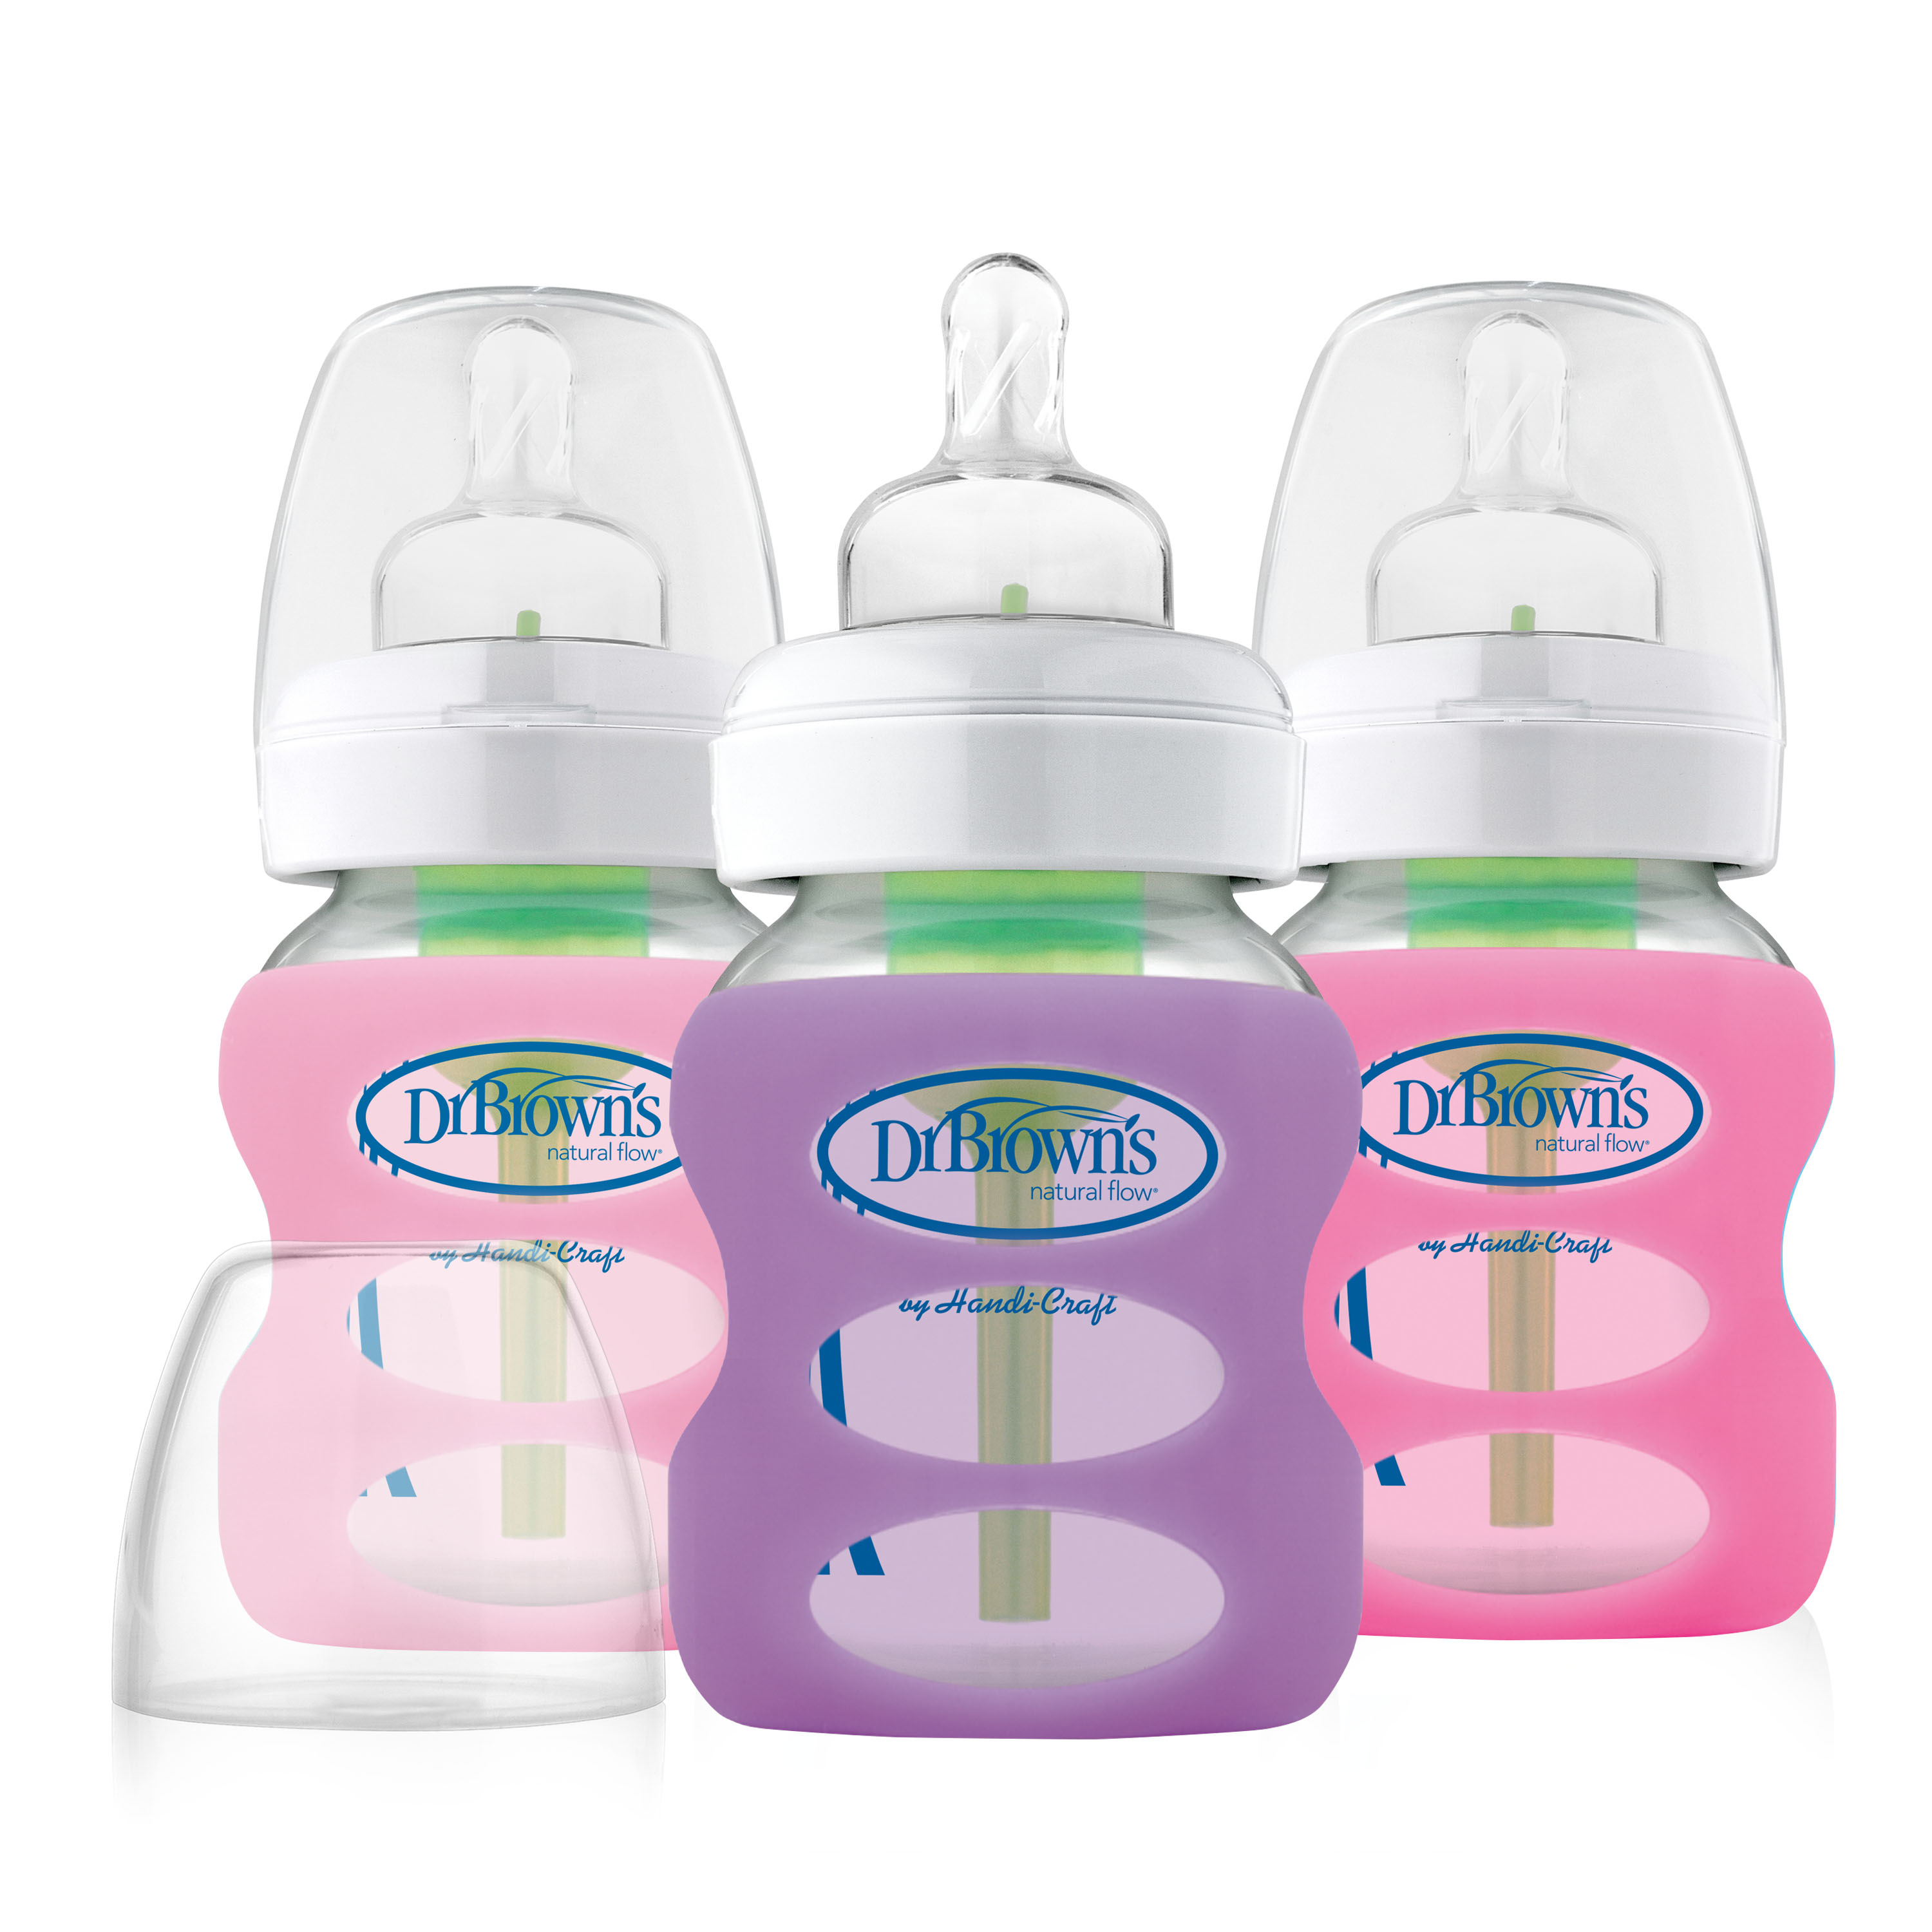 5oz Wide Neck Glass Bottles in Silicone Sleeve, 3pk, Boys